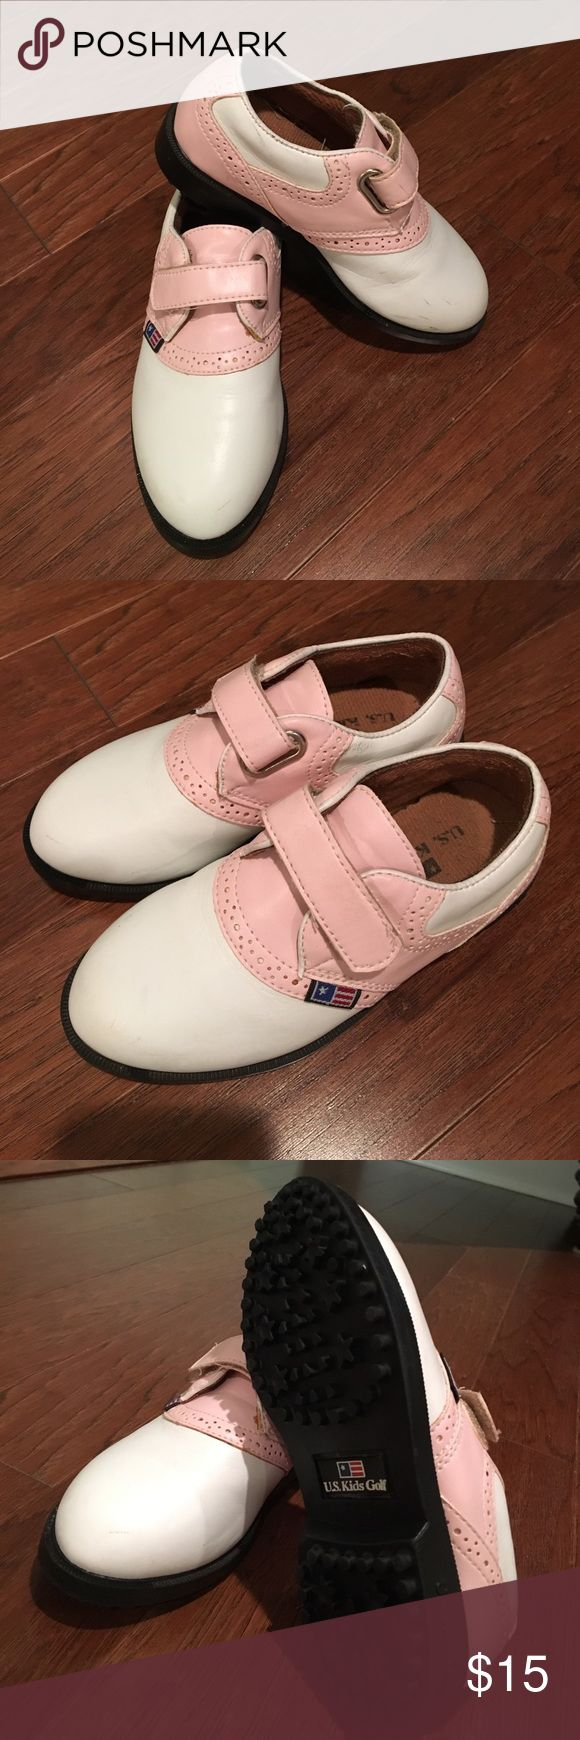 Girls pink and white golf shoes Great condition and so cute. US Kids Golf Shoes